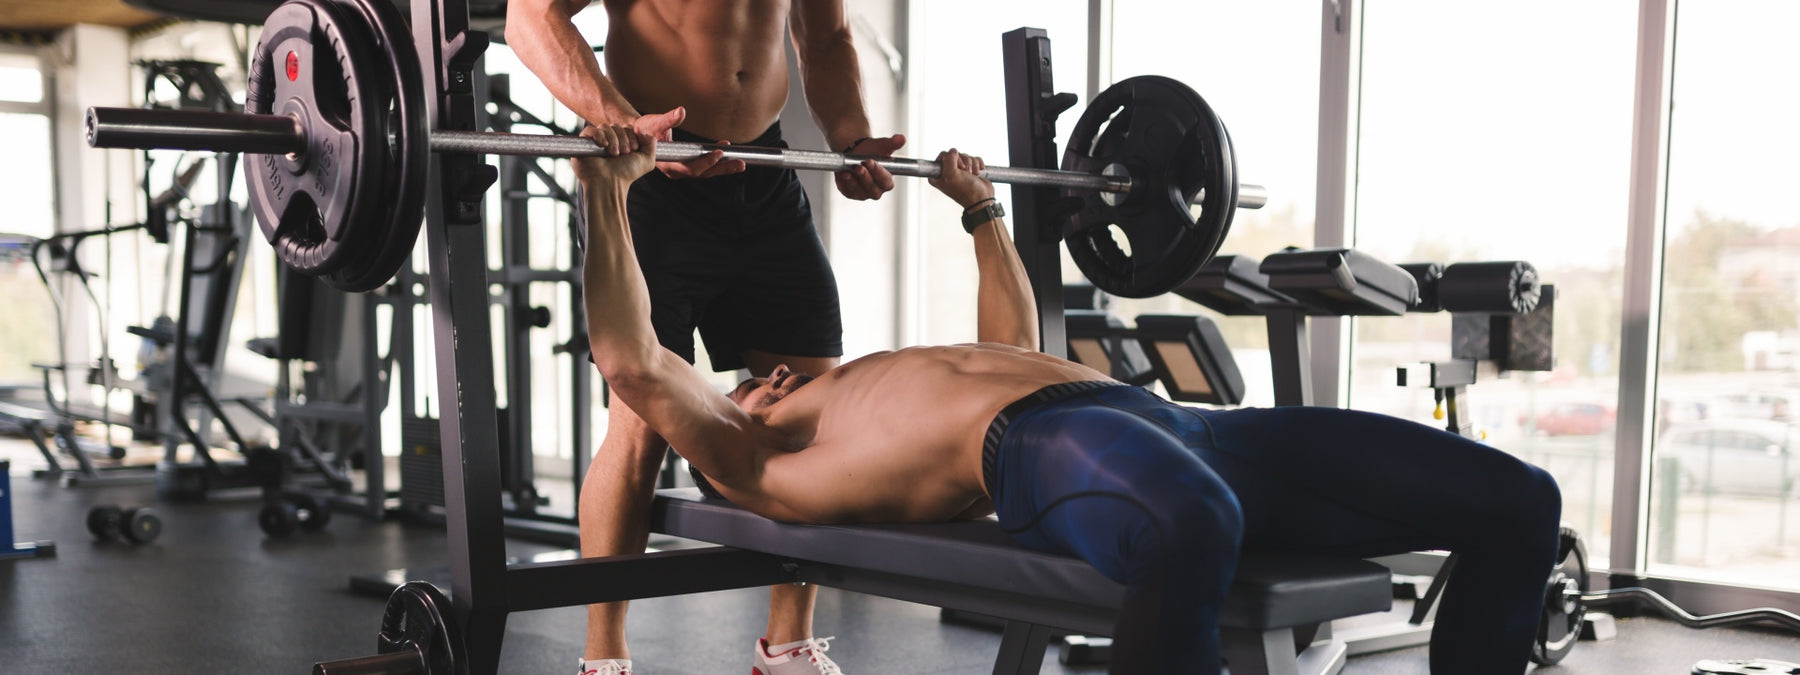 Powering Up Muscle Hypertrophy With the Squat, Deadlift and Bench Press